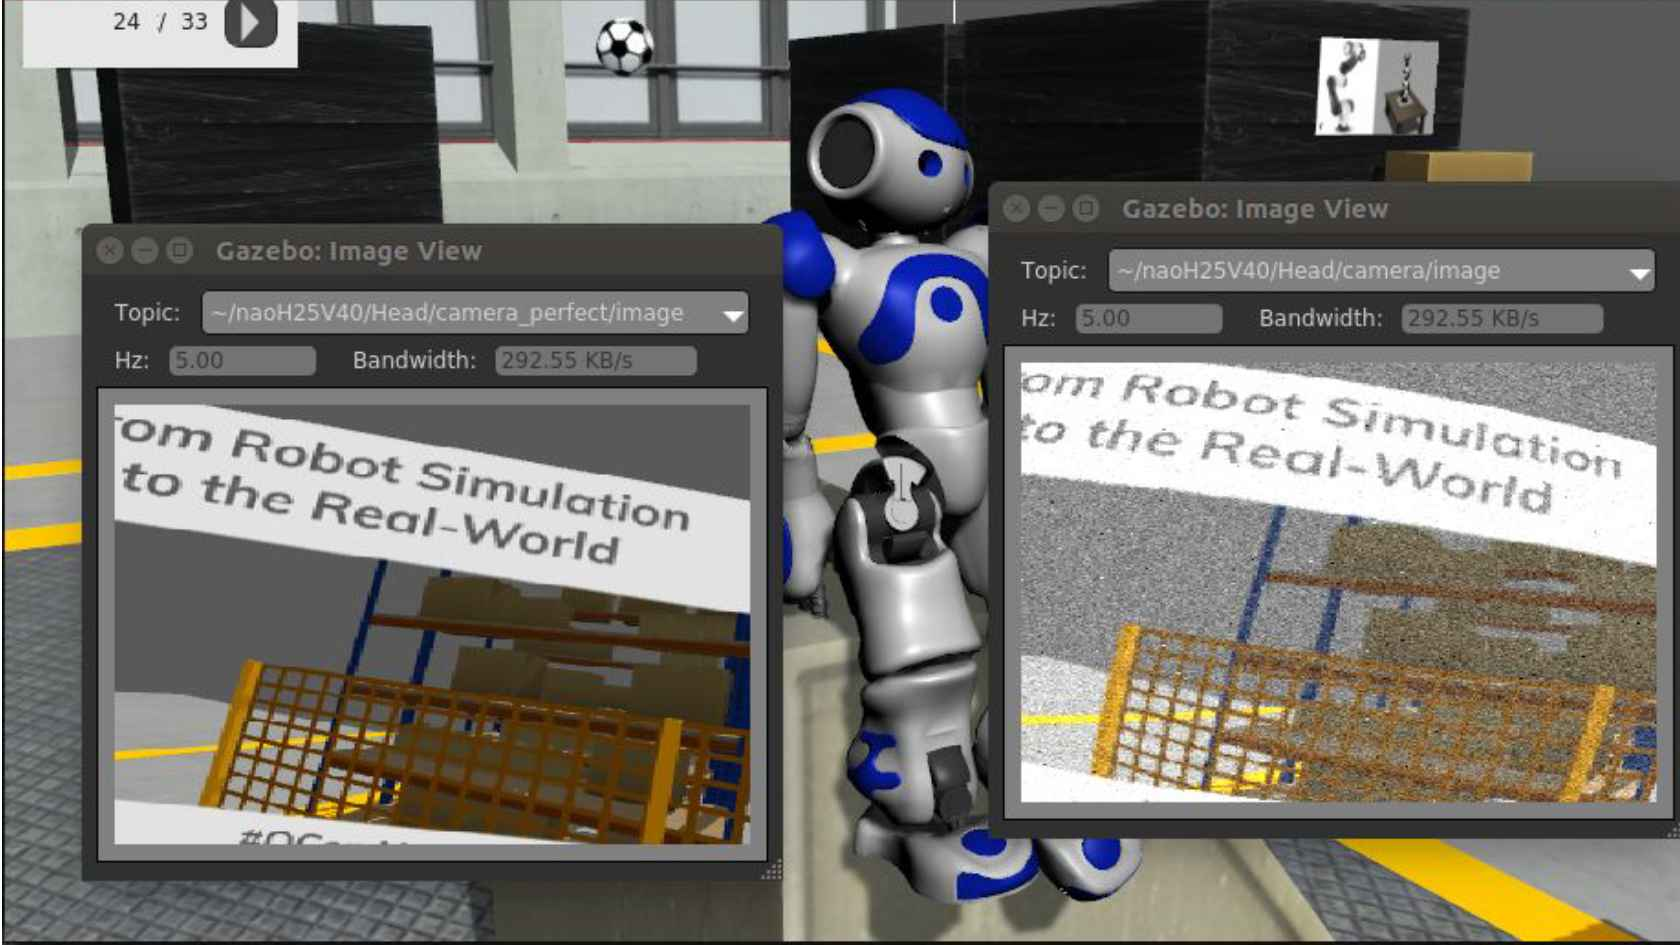 From Robot Simulation to the Real World